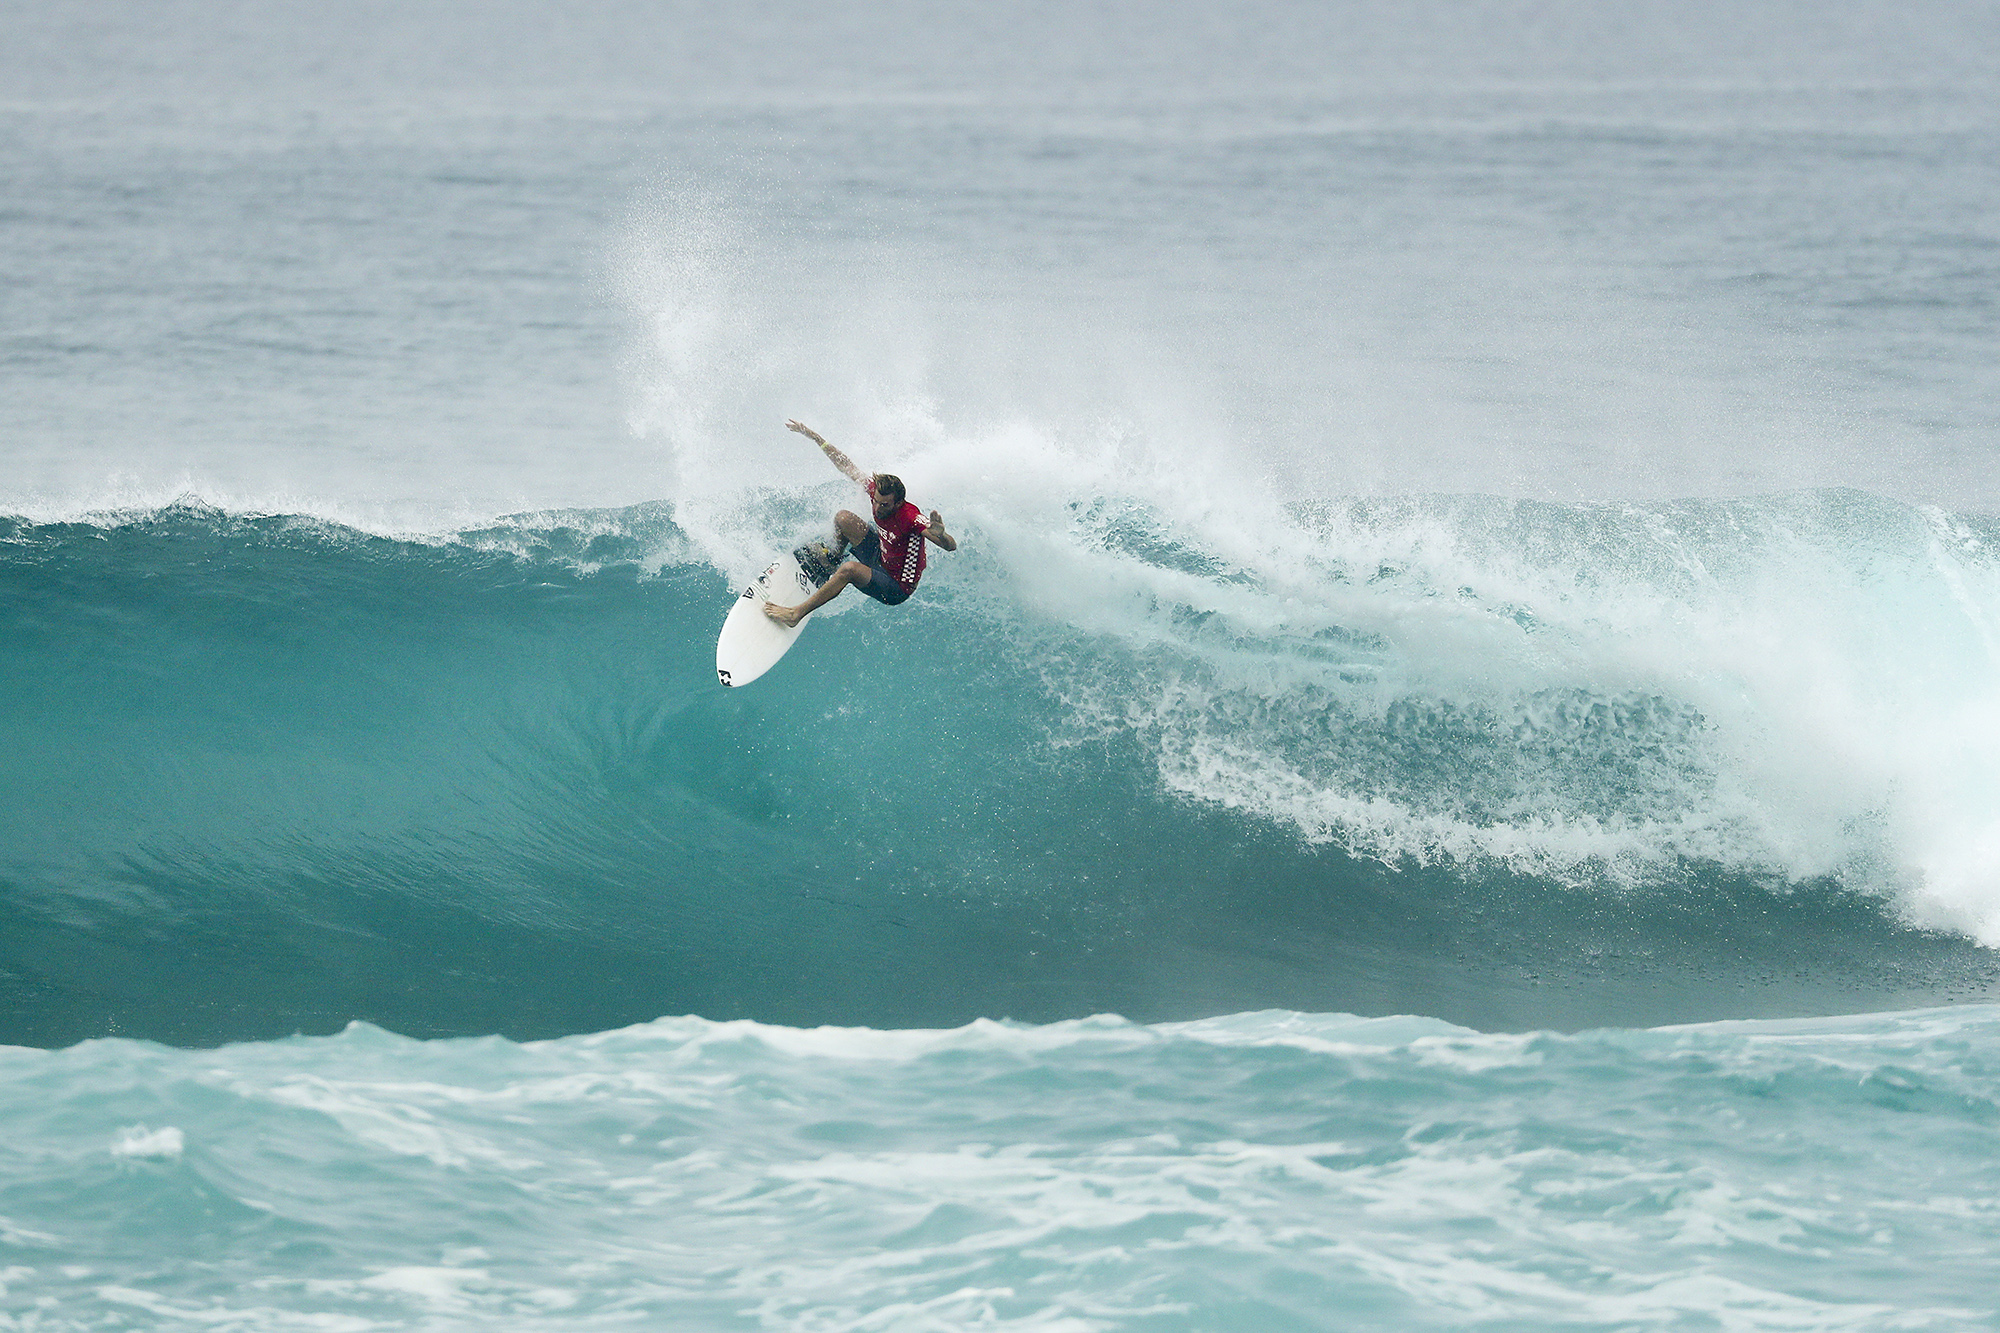 Frederico Morais SECOND in the Final of the VANS World Cup of Surfing at Sunst Beach, Hawaii today.